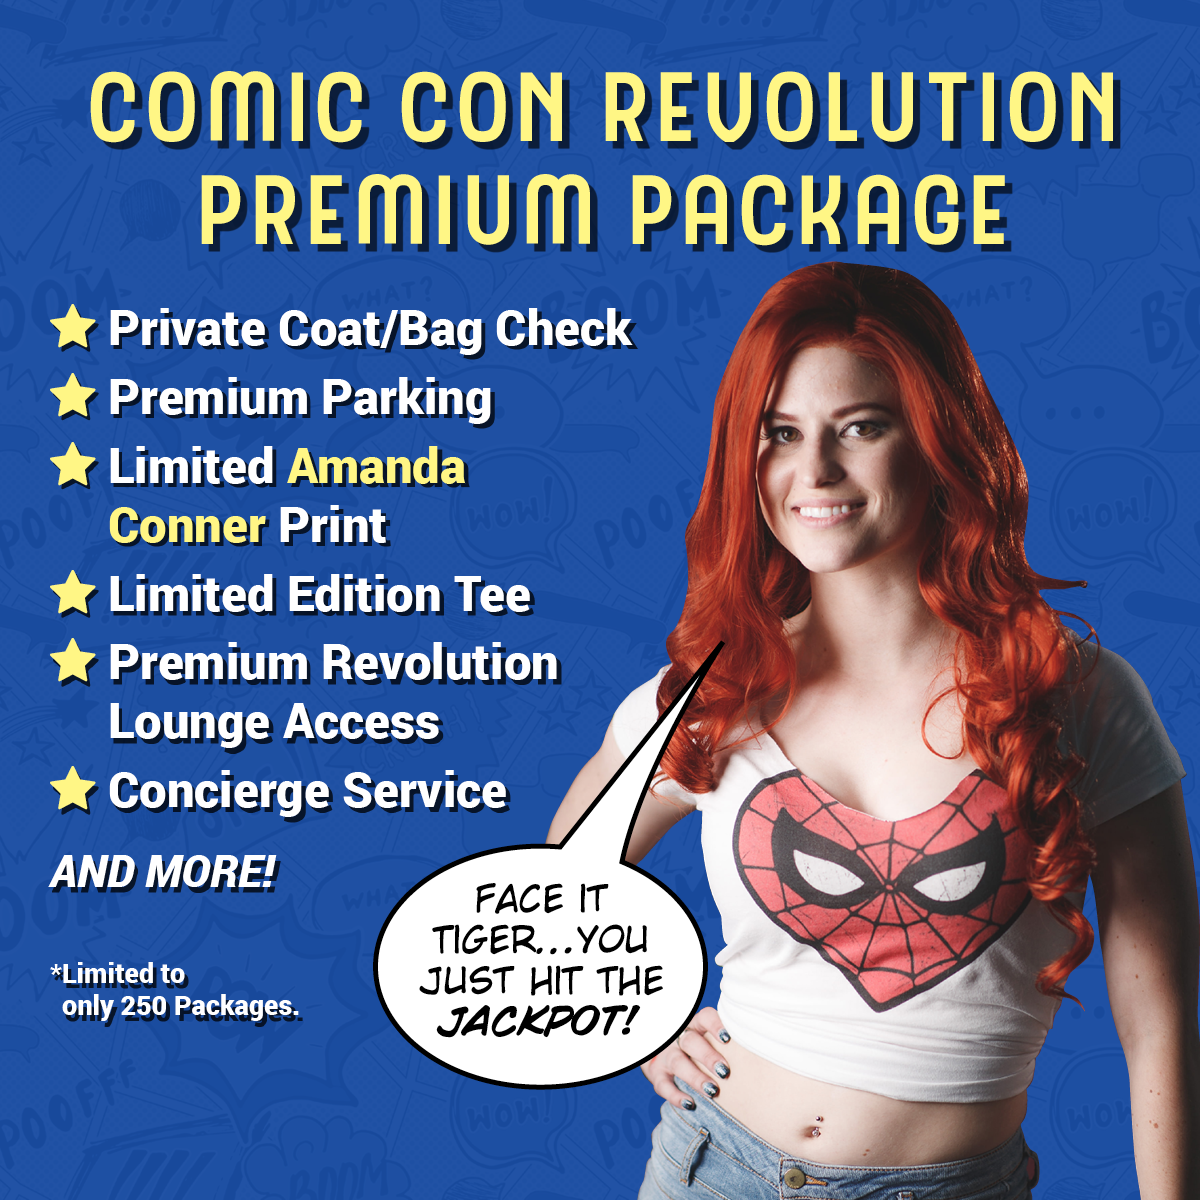 Comic Con Tickets